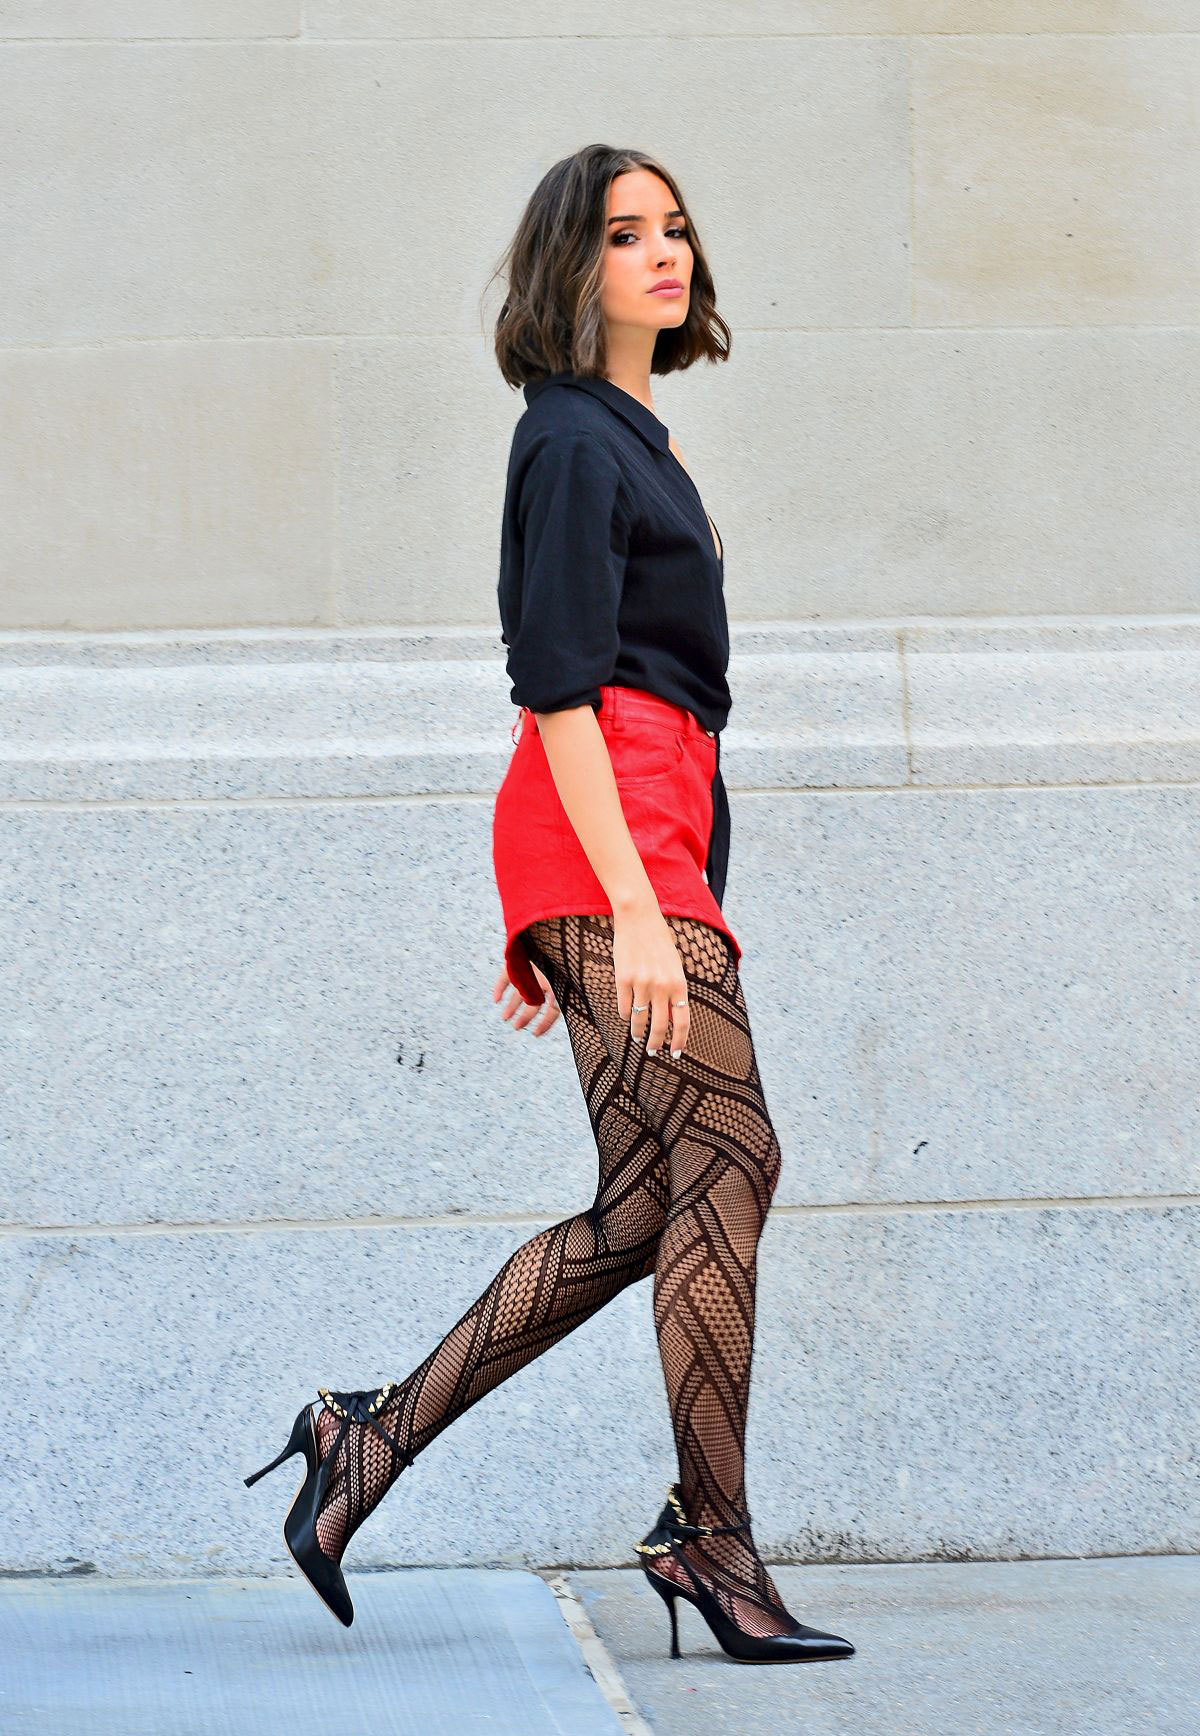 43a0504caf294 Olivia Culpo in Fishnet Tights and Red Shorts at a Photoshoot in New York